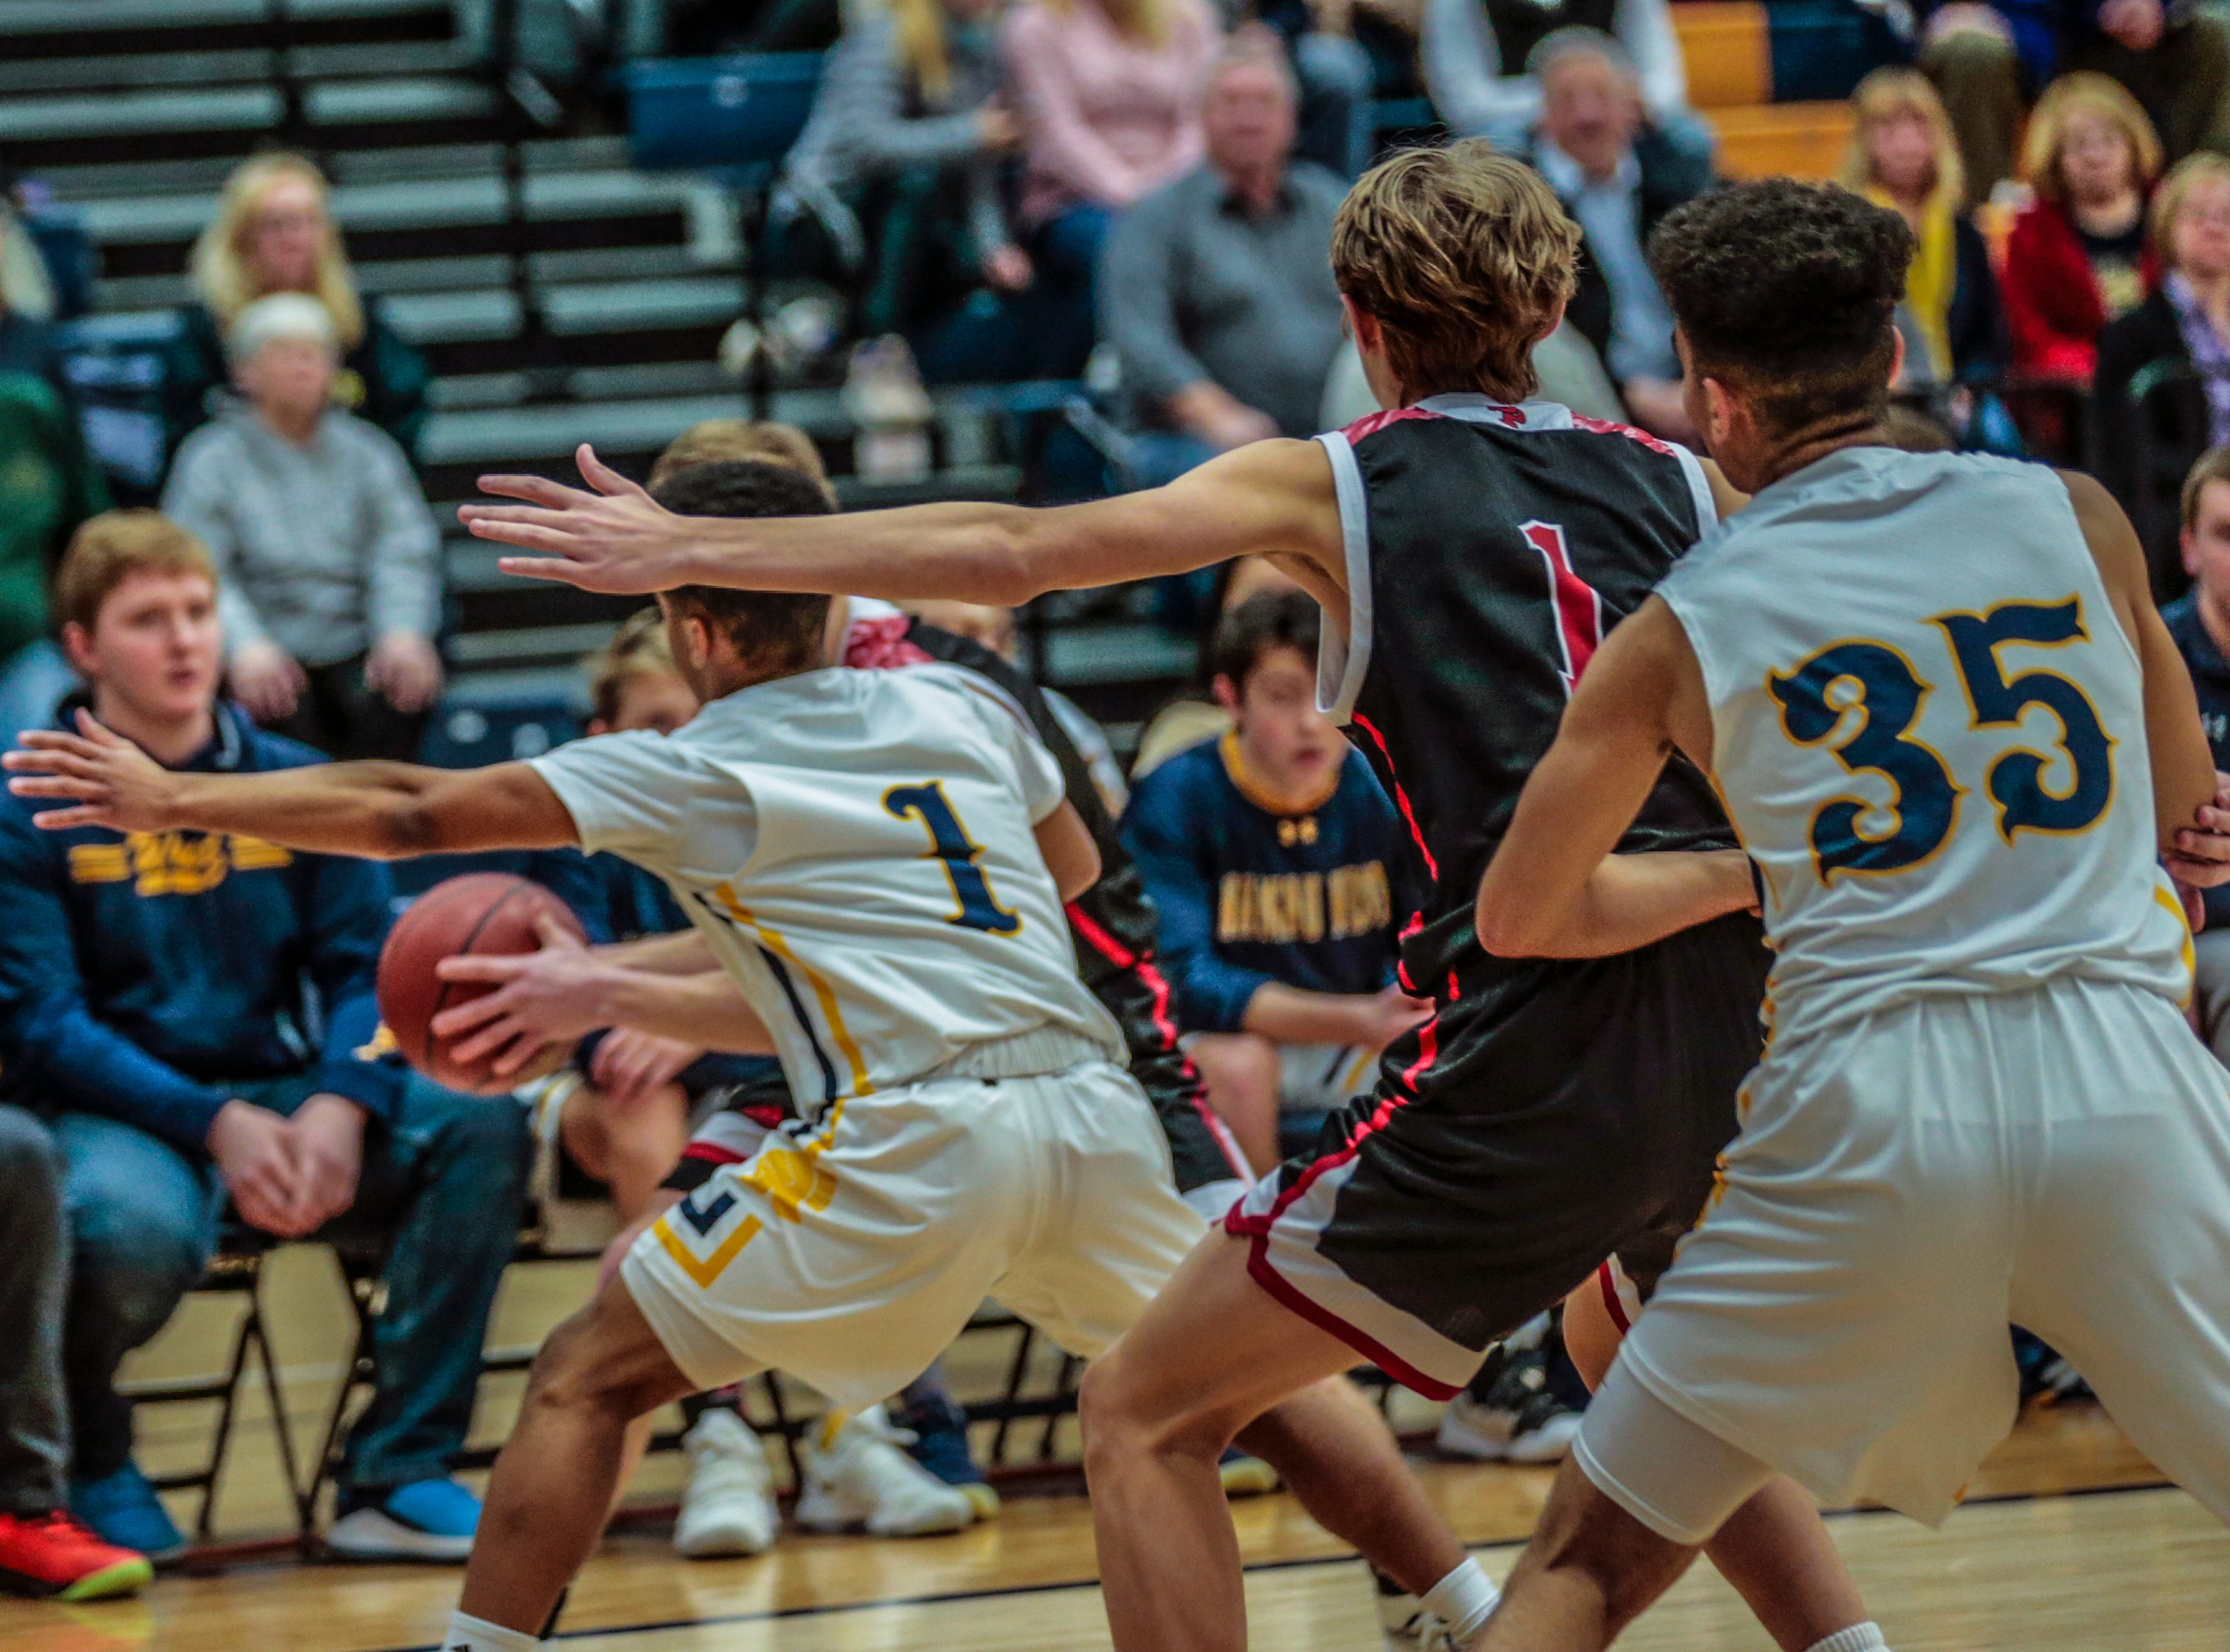 West hosted SPASH boys on Wisconsin Valley Conference boys basketball game Friday, Feb. 15, 2019, at Wausau West High School in Wausau, Wis. T'xer Zhon Kha/USA TODAY NETWORK-Wisconsin